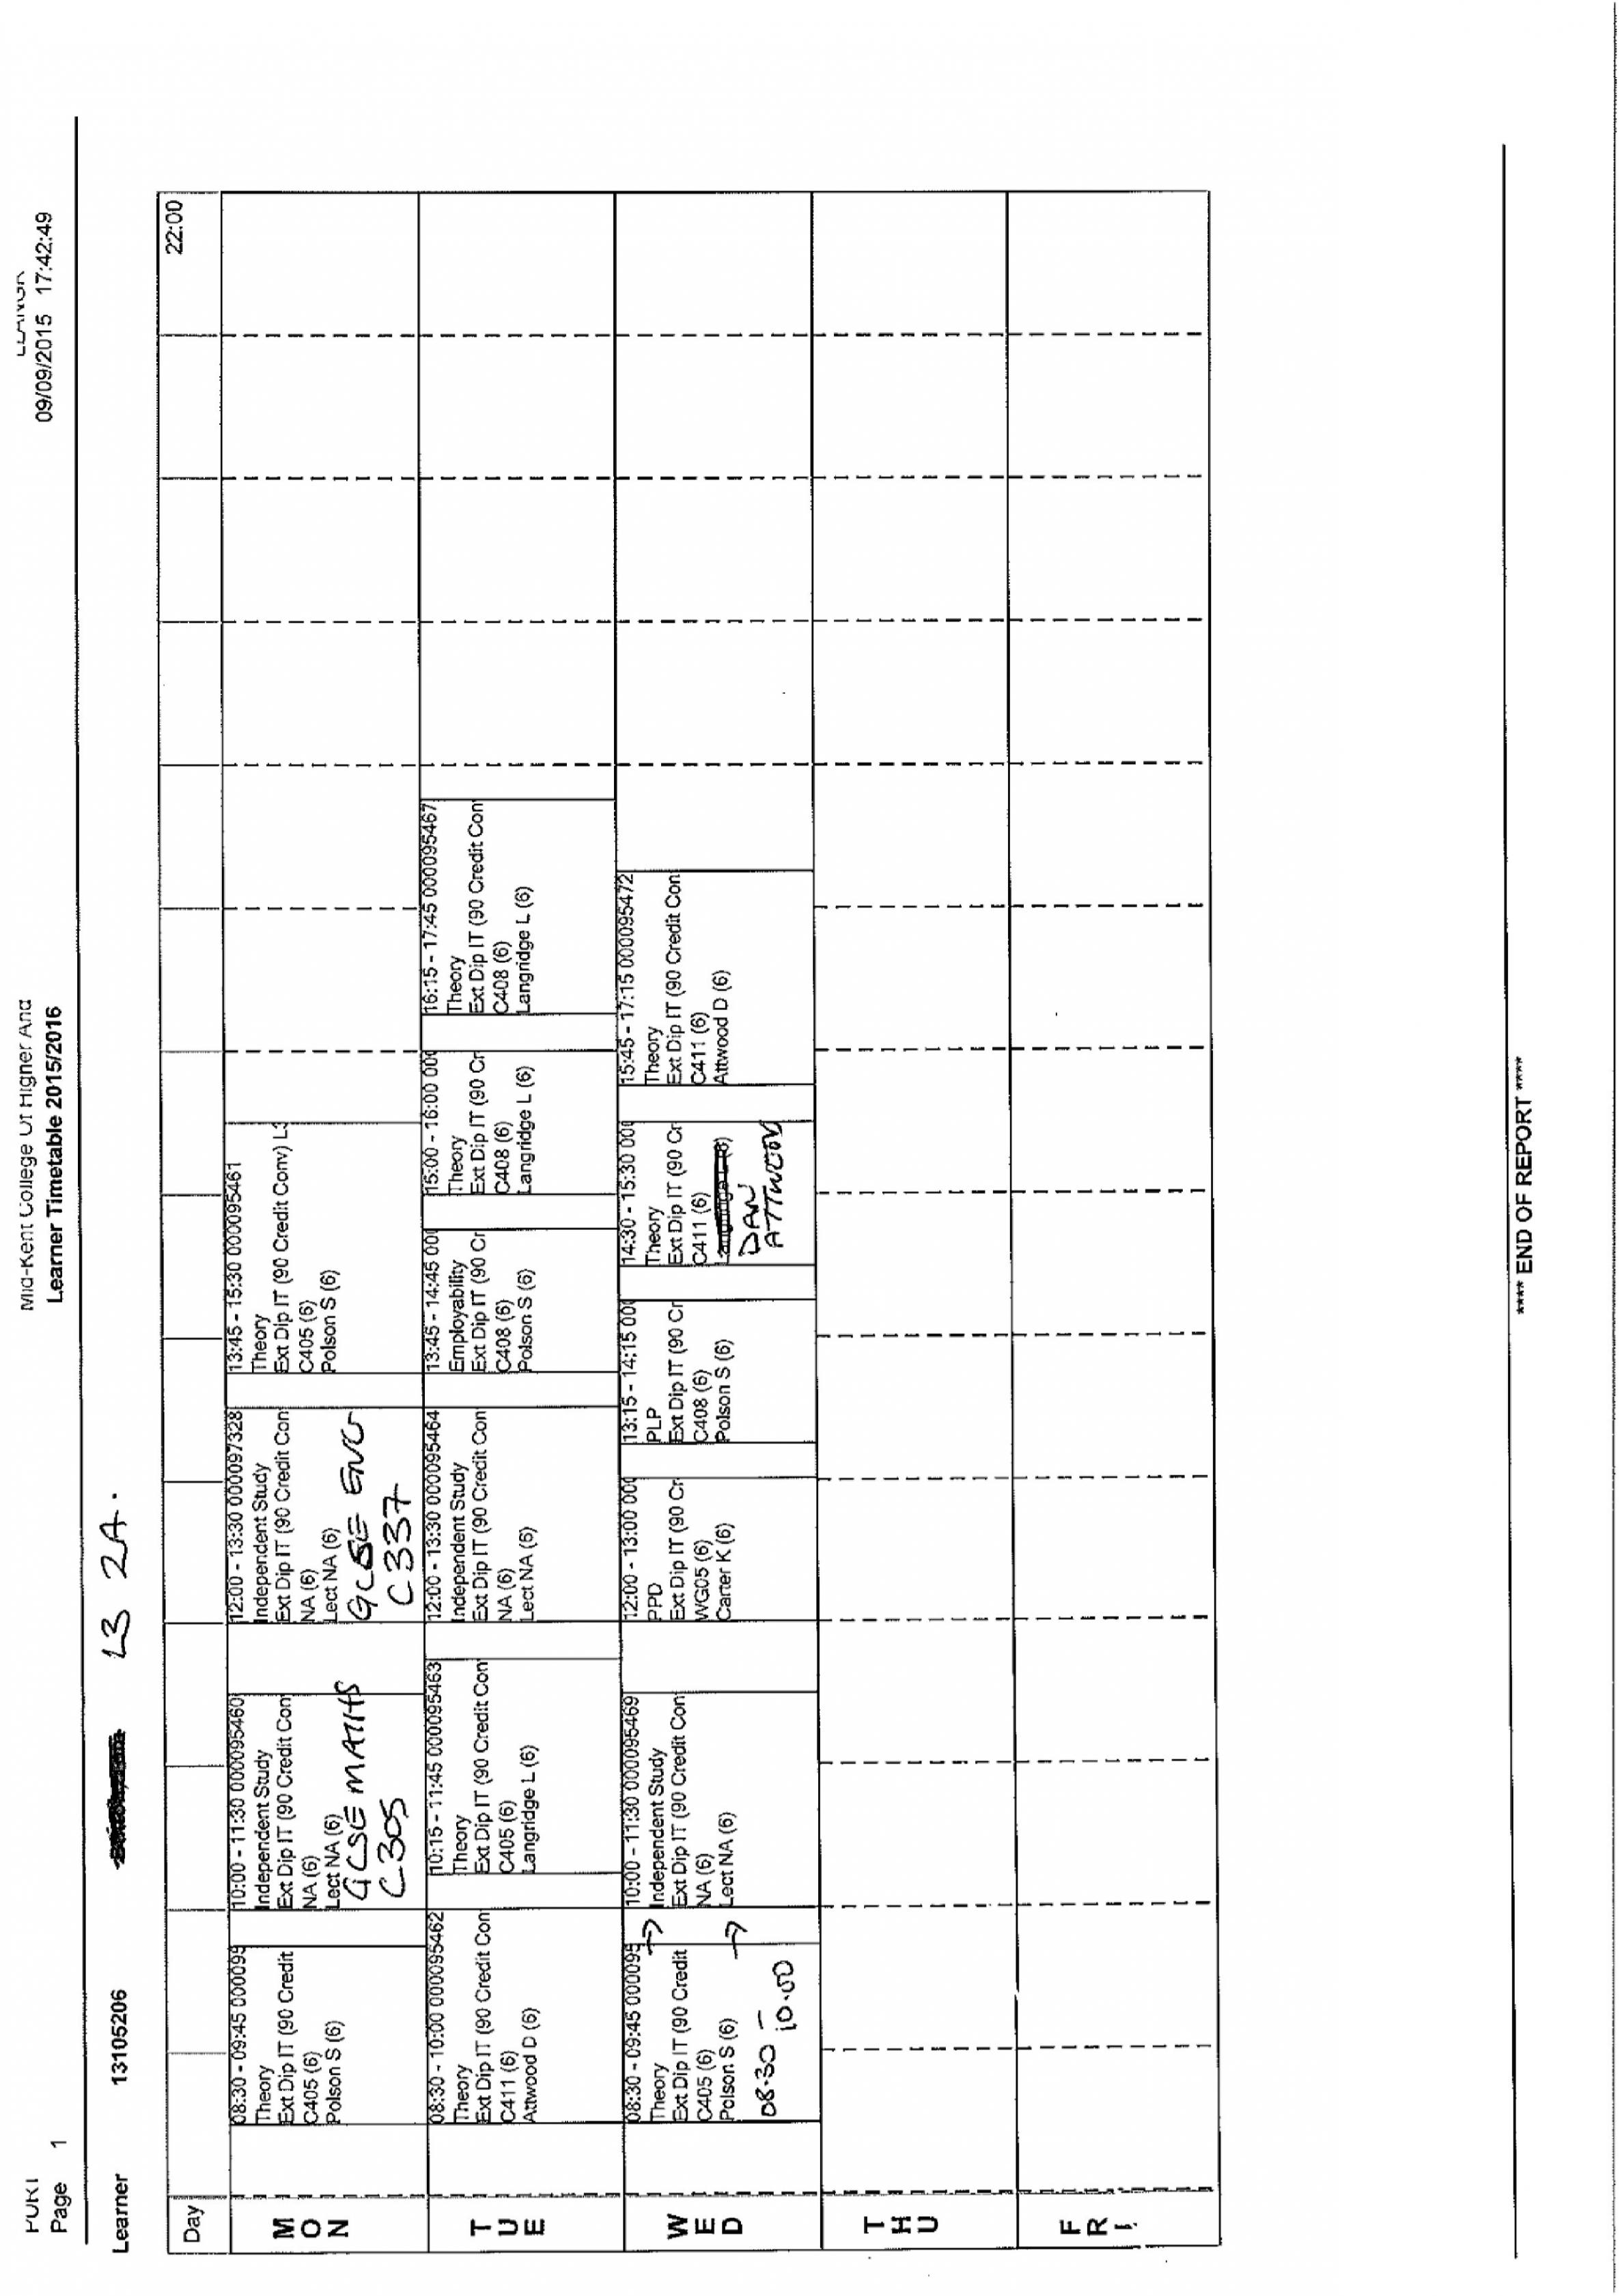 can my college set this timetable the student room attached images